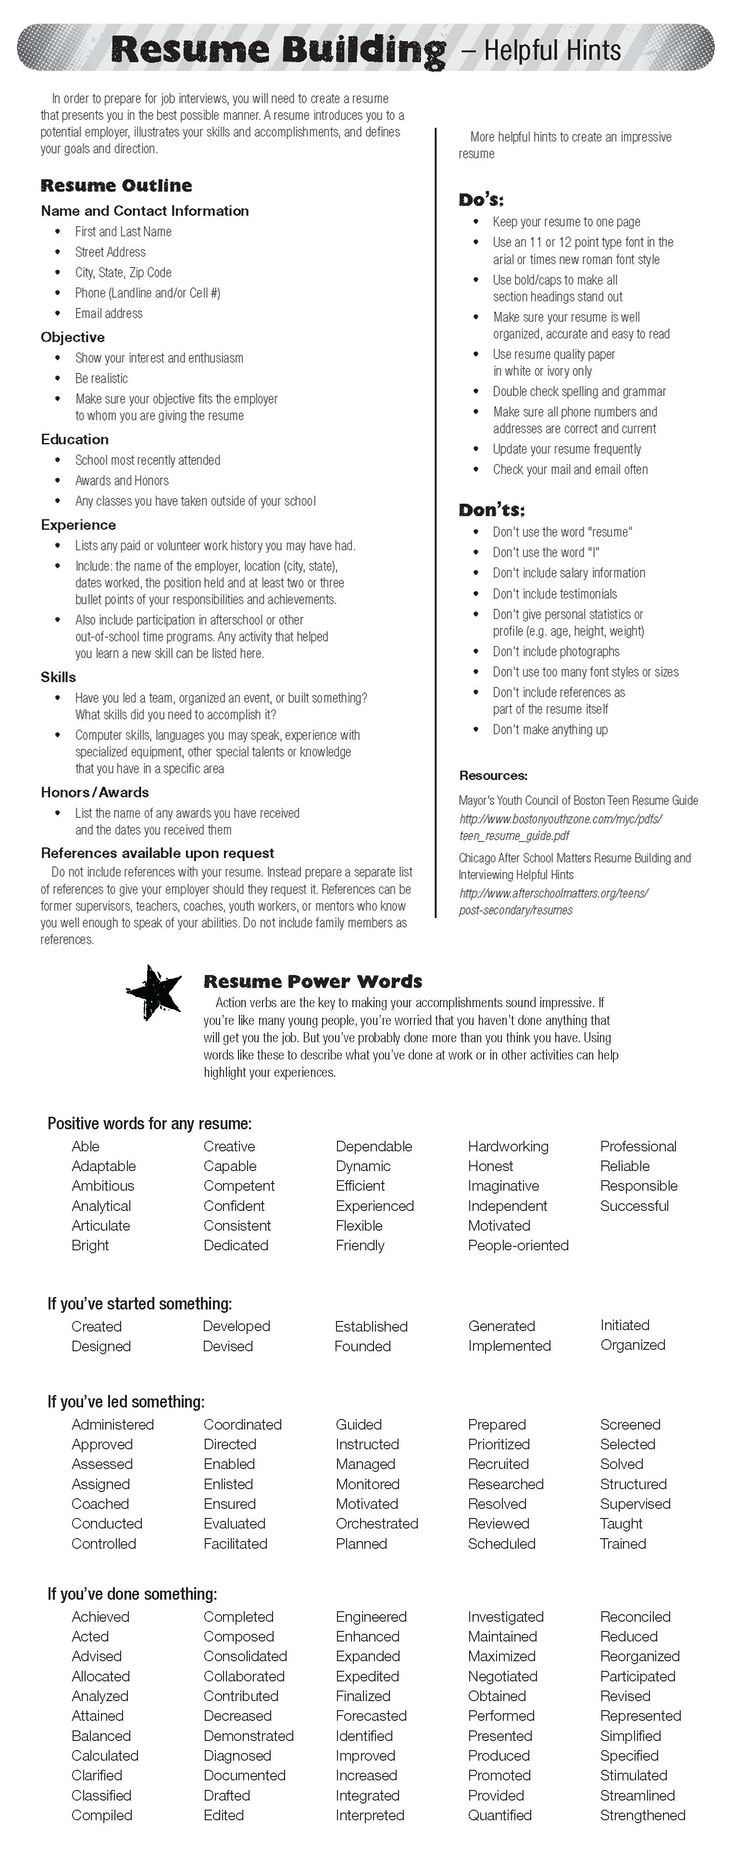 Opposenewapstandardsus  Winning  Ideas About Resume On Pinterest  Cv Format Resume Cv And  With Outstanding  Ideas About Resume On Pinterest  Cv Format Resume Cv And Resume Templates With Delightful Resume Buildr Also Engineering Technician Resume In Addition Put High School On Resume And Word Format Resume As Well As Bilingual On Resume Additionally Custom Resume From Pinterestcom With Opposenewapstandardsus  Outstanding  Ideas About Resume On Pinterest  Cv Format Resume Cv And  With Delightful  Ideas About Resume On Pinterest  Cv Format Resume Cv And Resume Templates And Winning Resume Buildr Also Engineering Technician Resume In Addition Put High School On Resume From Pinterestcom